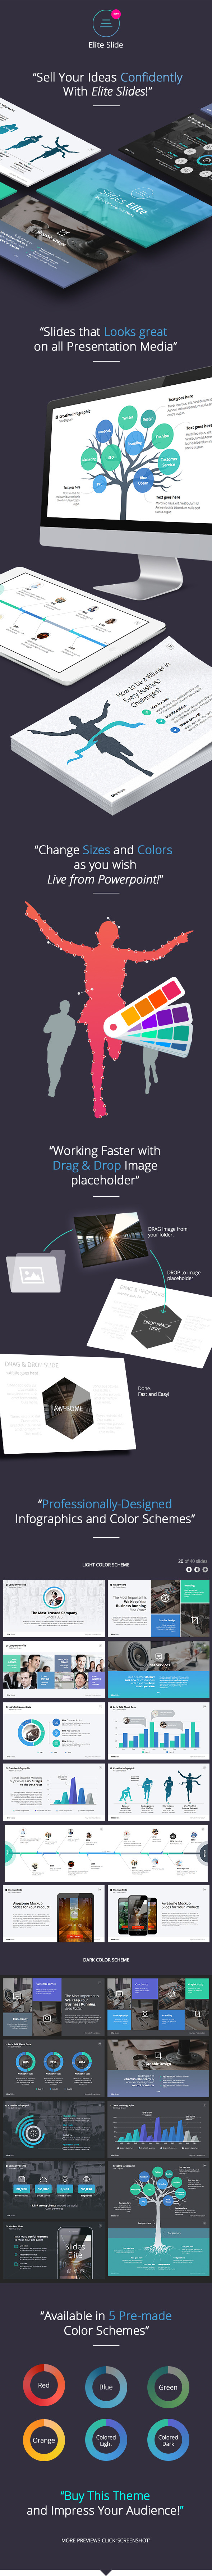 GraphicRiver Slides Elite Powerpoint Template Vol 1 9717598